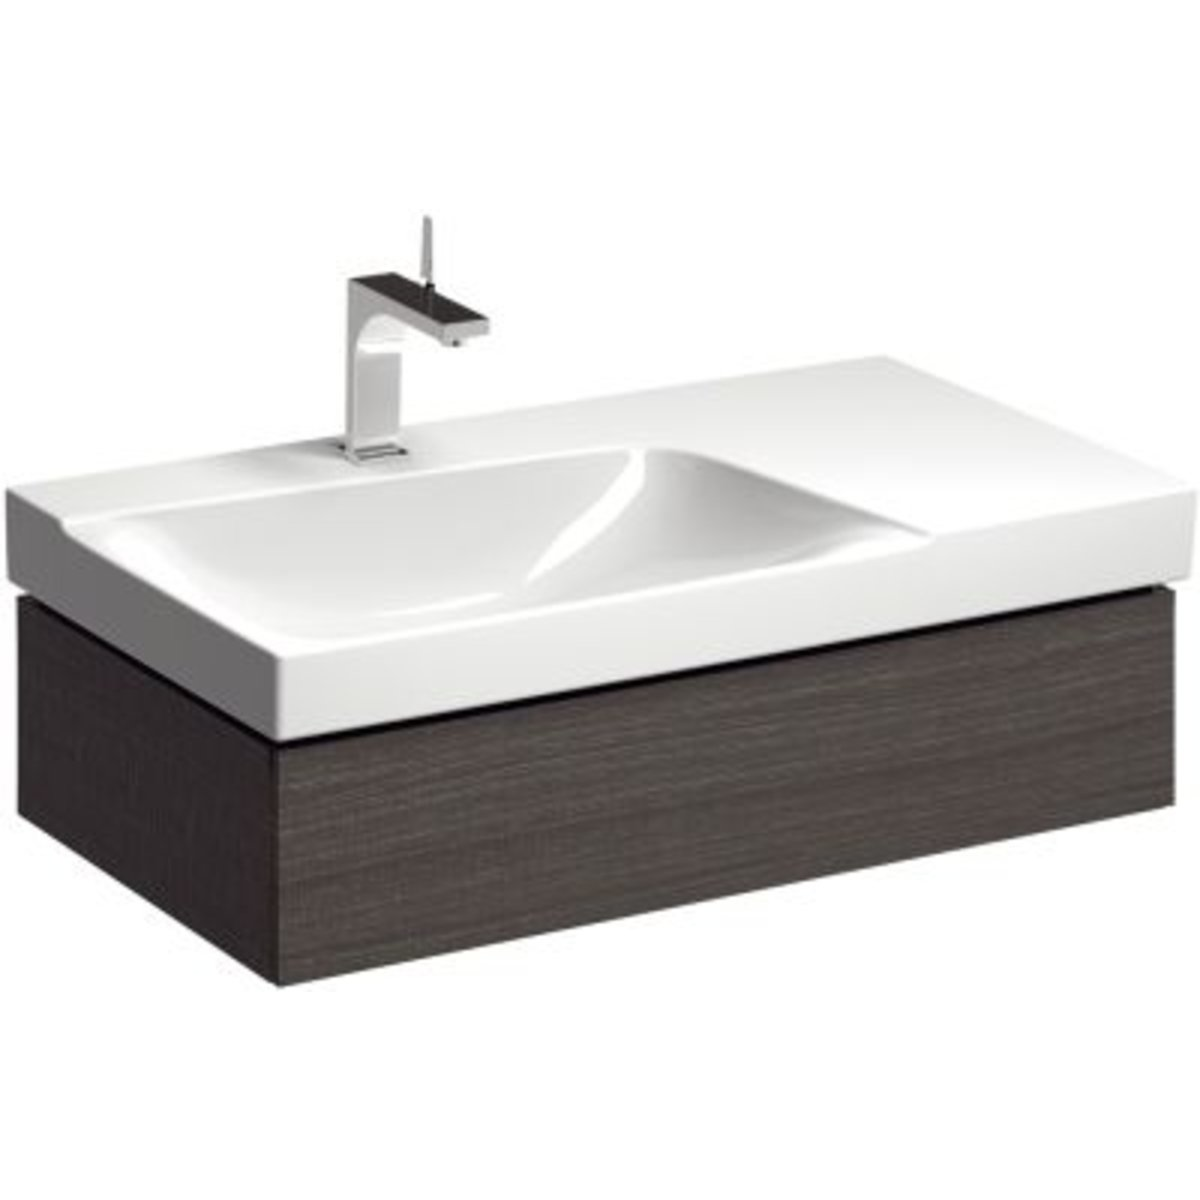 sphinx serie 420 new meuble lavabo pour lavabo gauche 90cm avec 1 tiroir gris s8m13081560. Black Bedroom Furniture Sets. Home Design Ideas